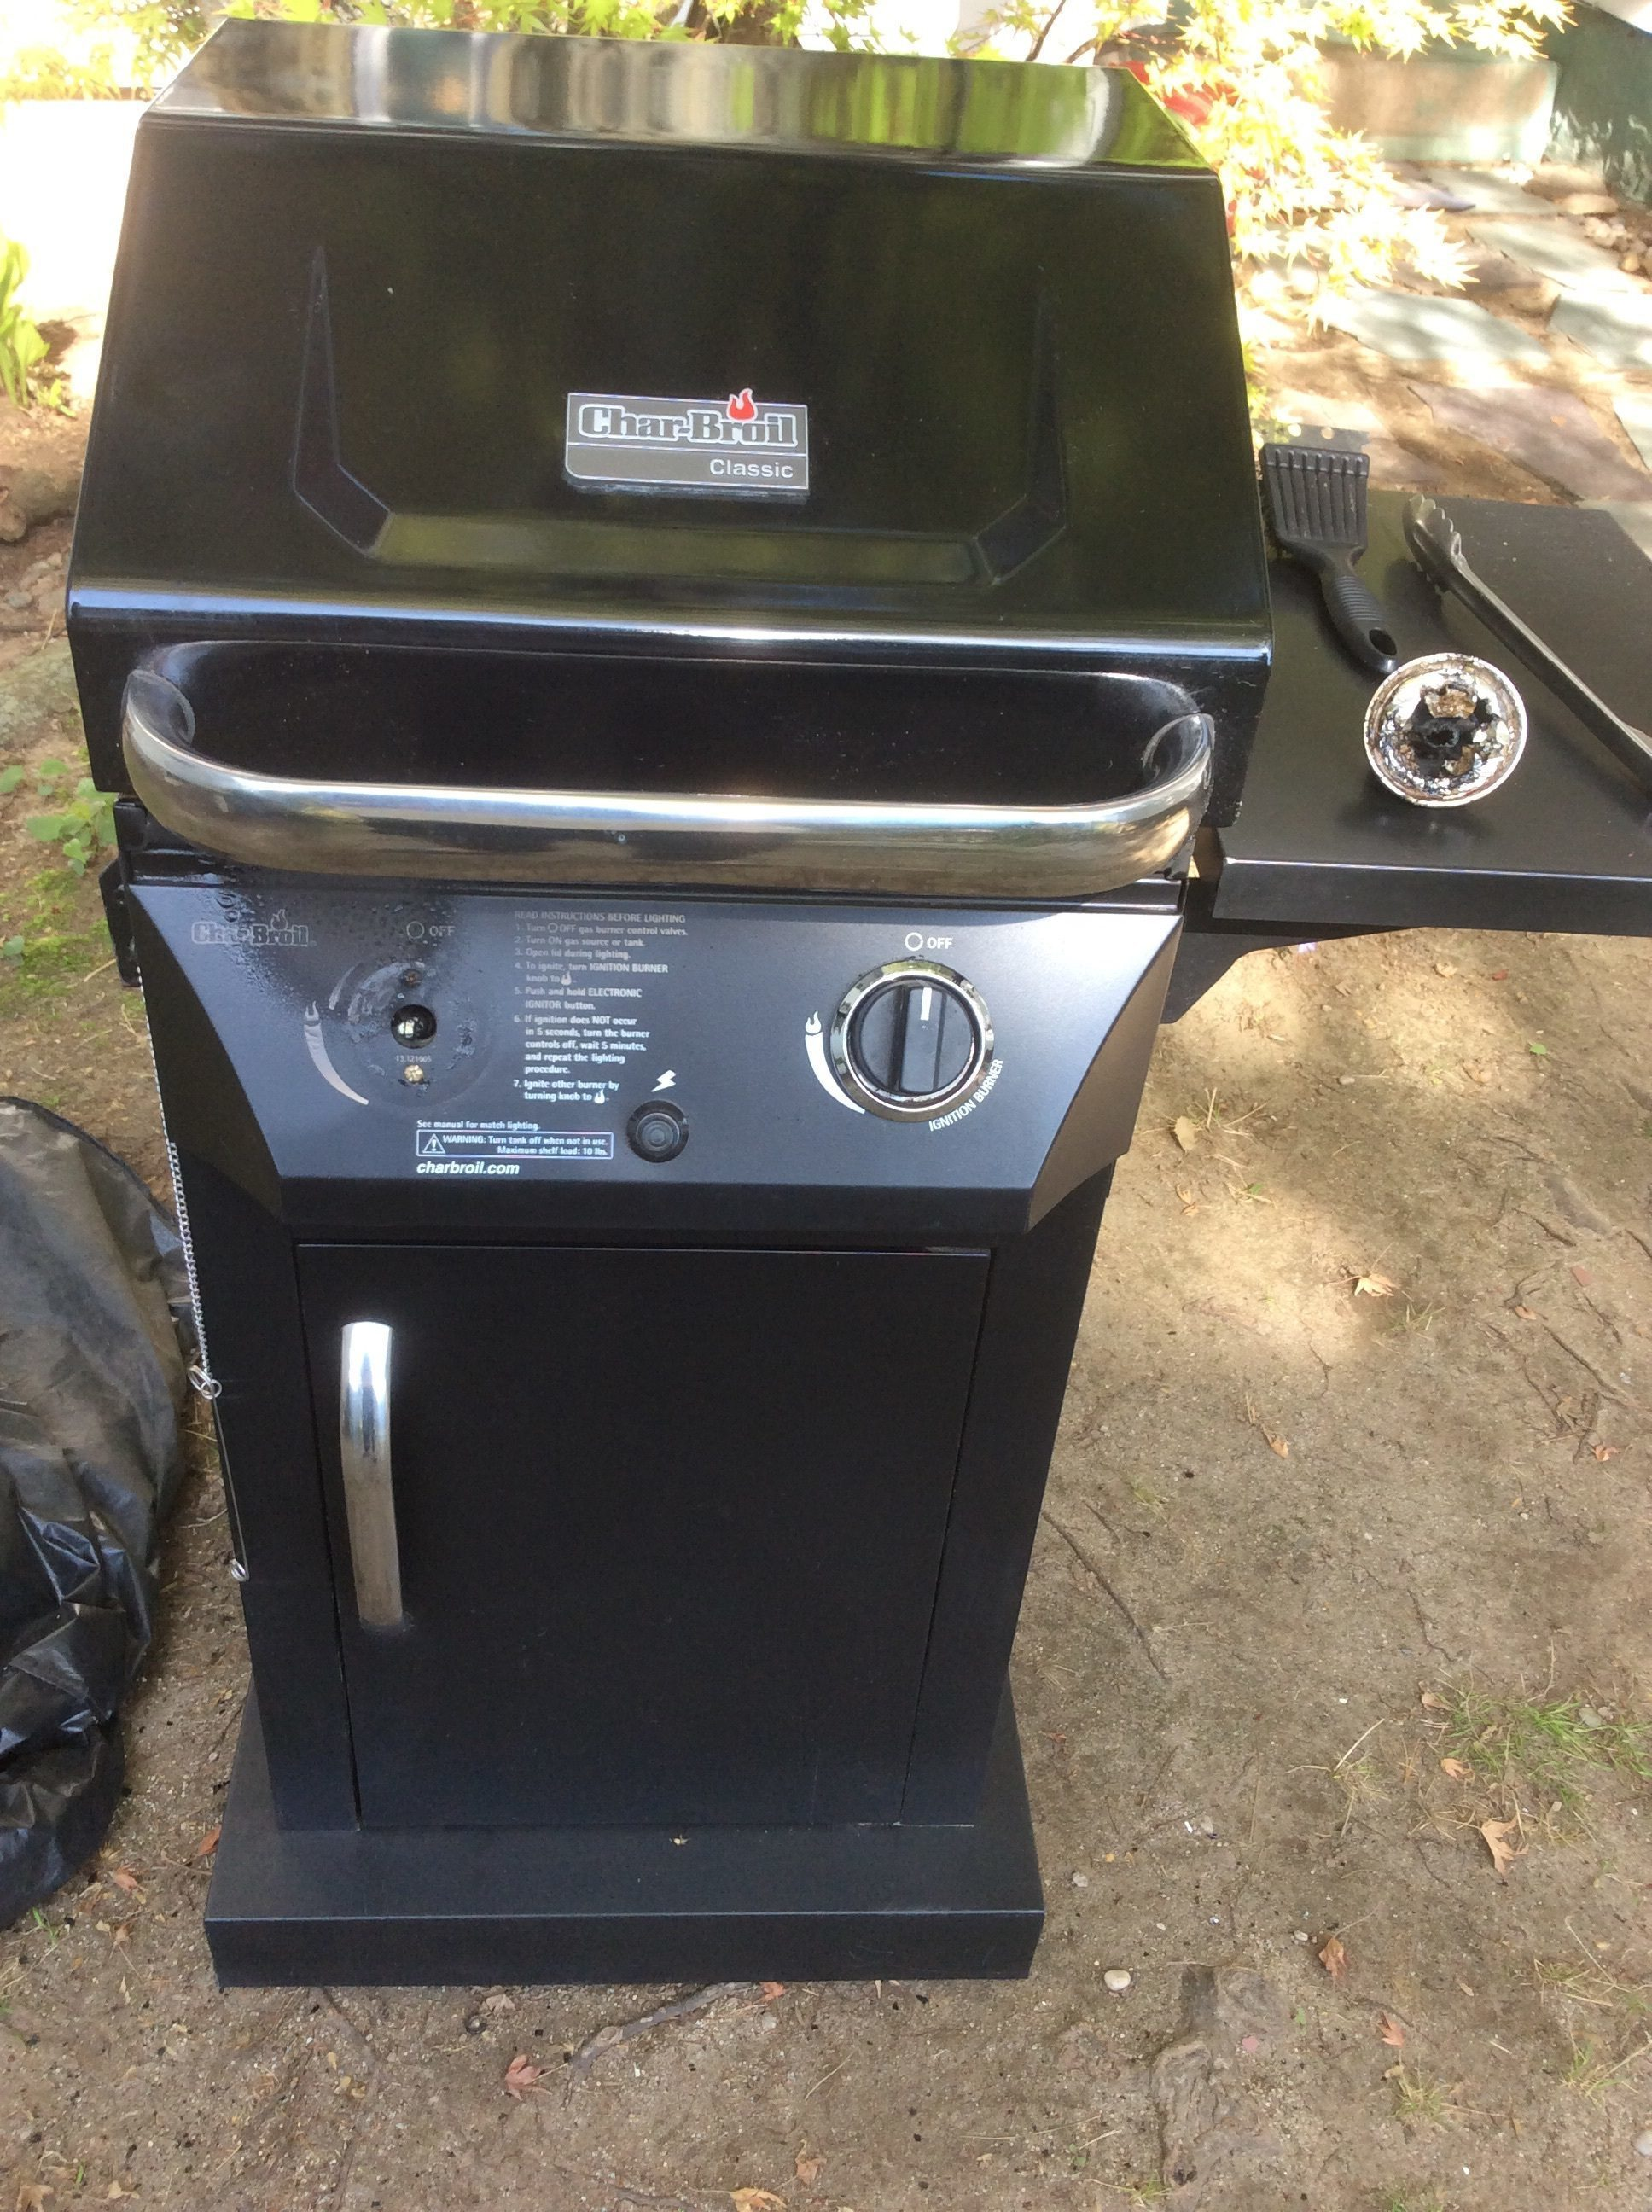 Char broil commercial series gas grill - Bought The Grill And Have Used It Maybe A Dozen Times The Grill Is Just Like Brand New Turned It On And It Started Smoking I Went To Turn The Knob Off